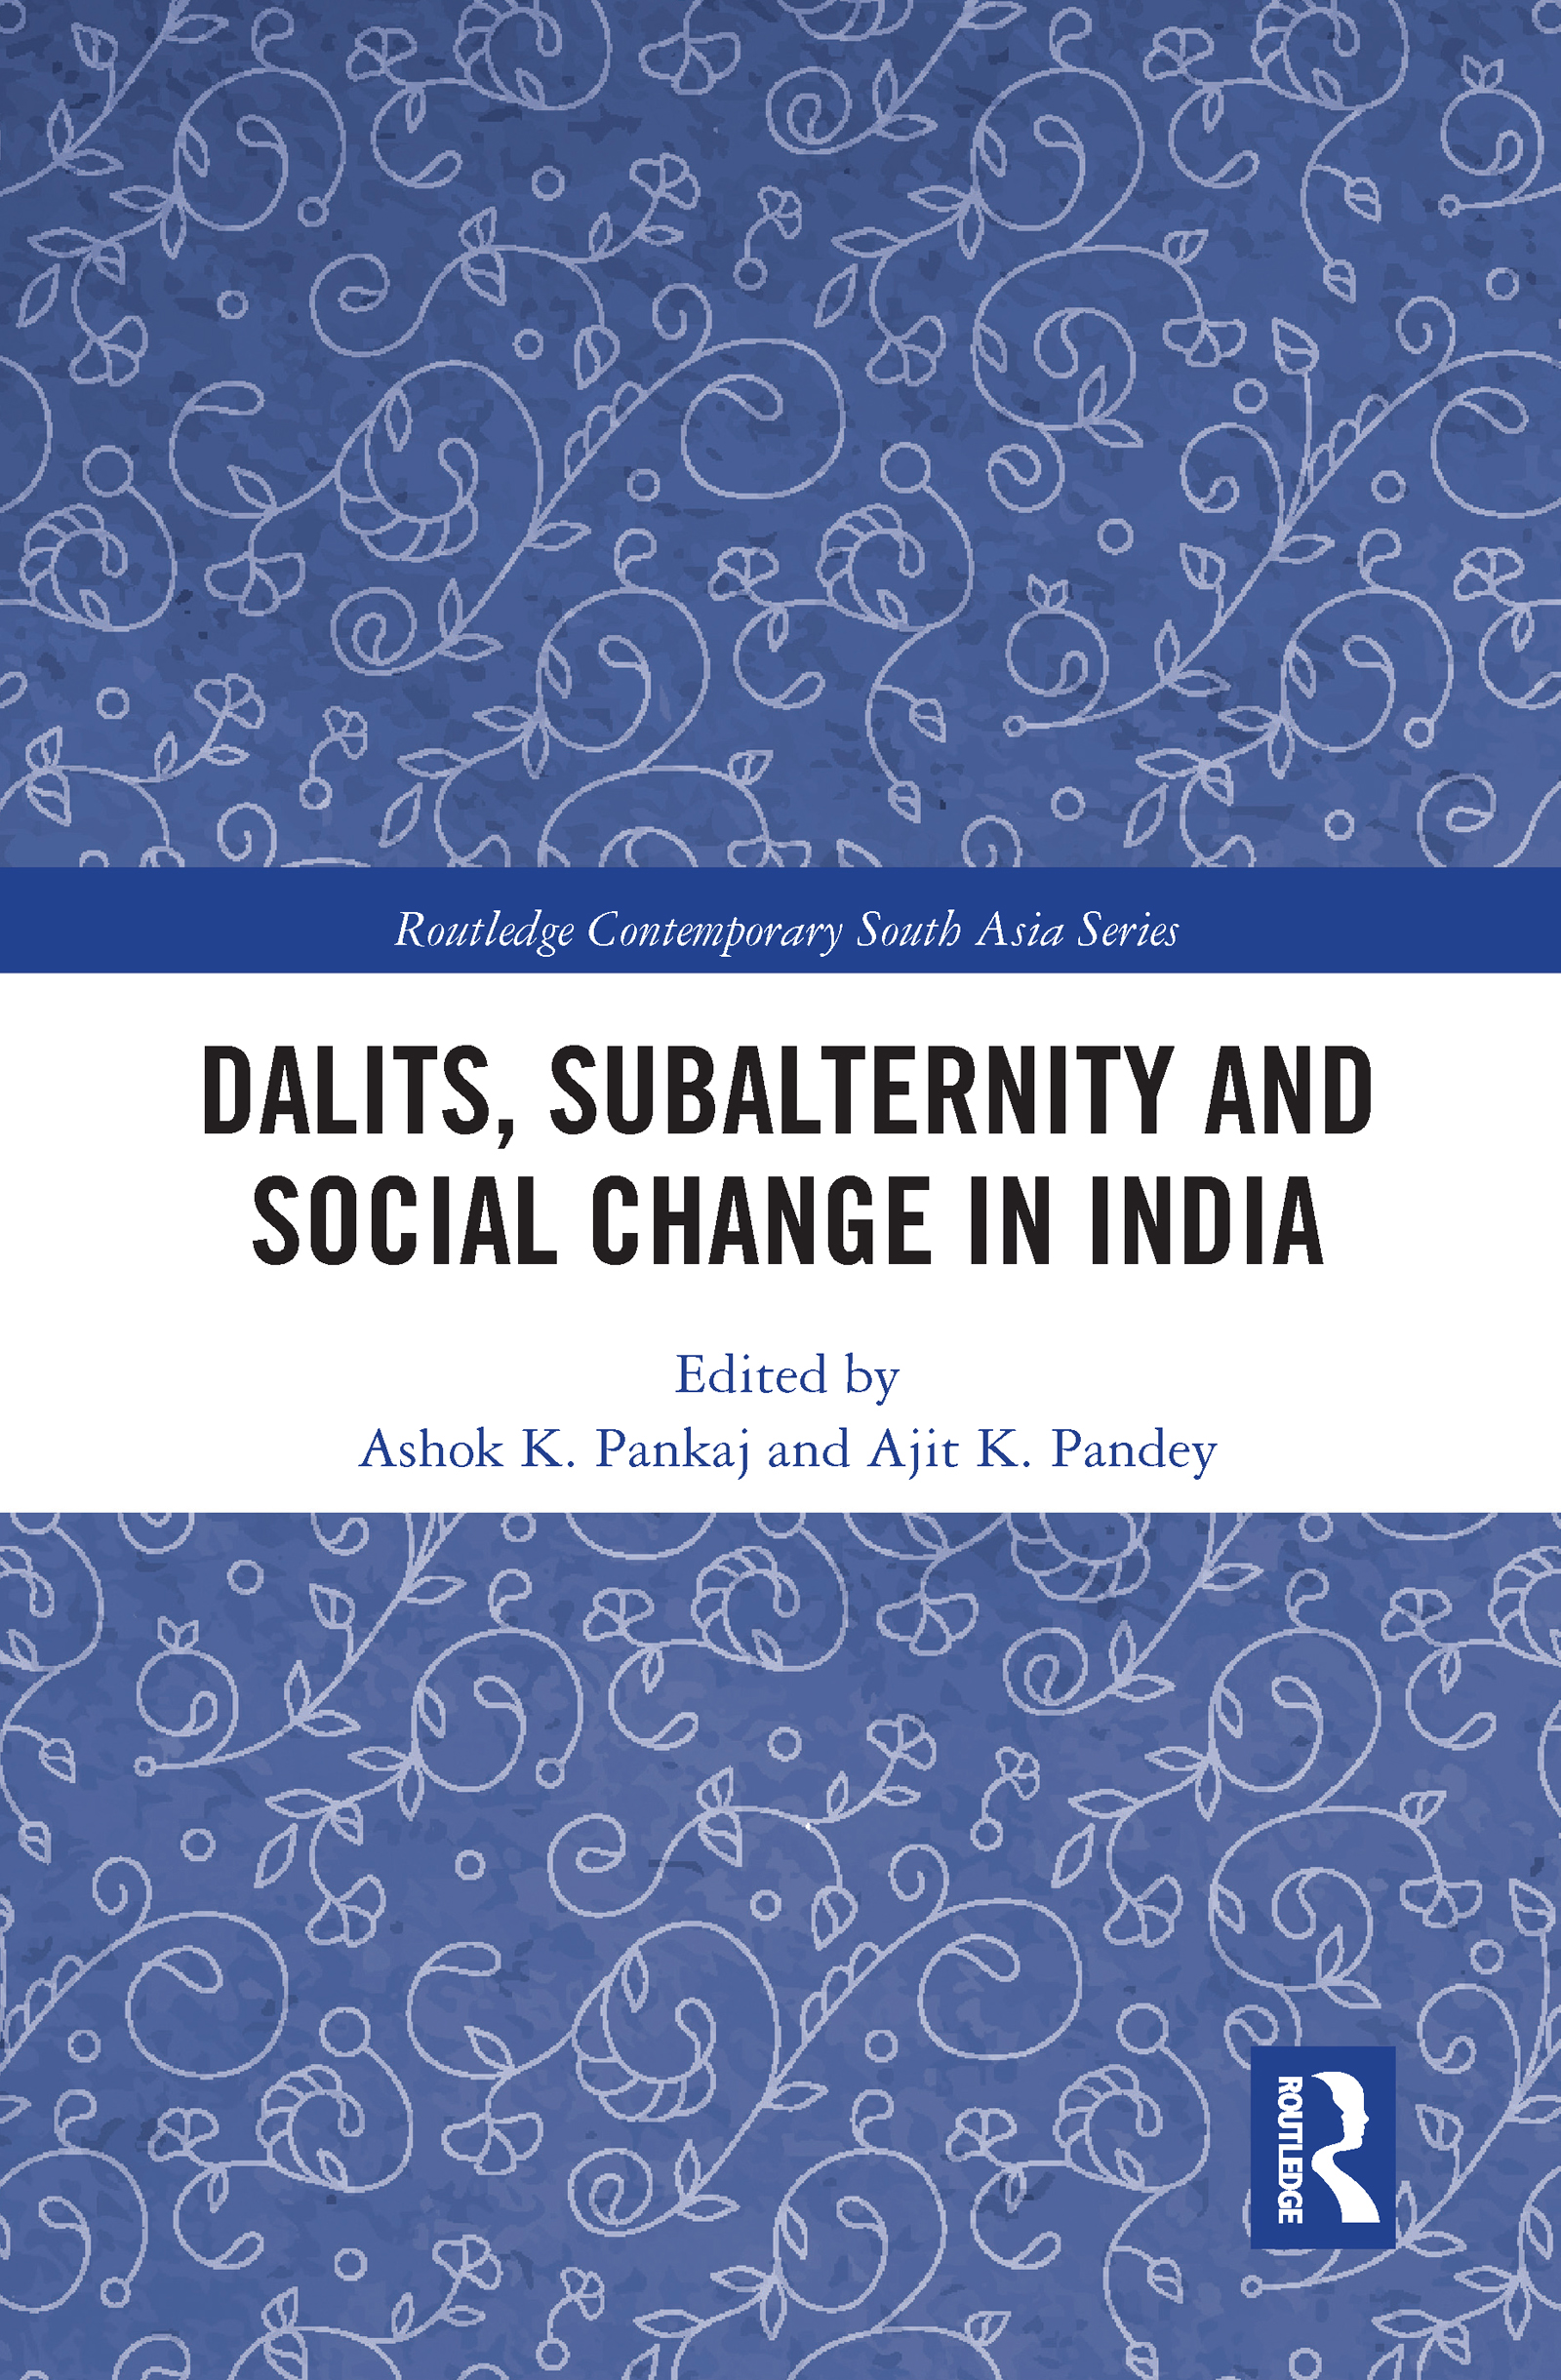 Dalits, Subalternity and Social Change in India